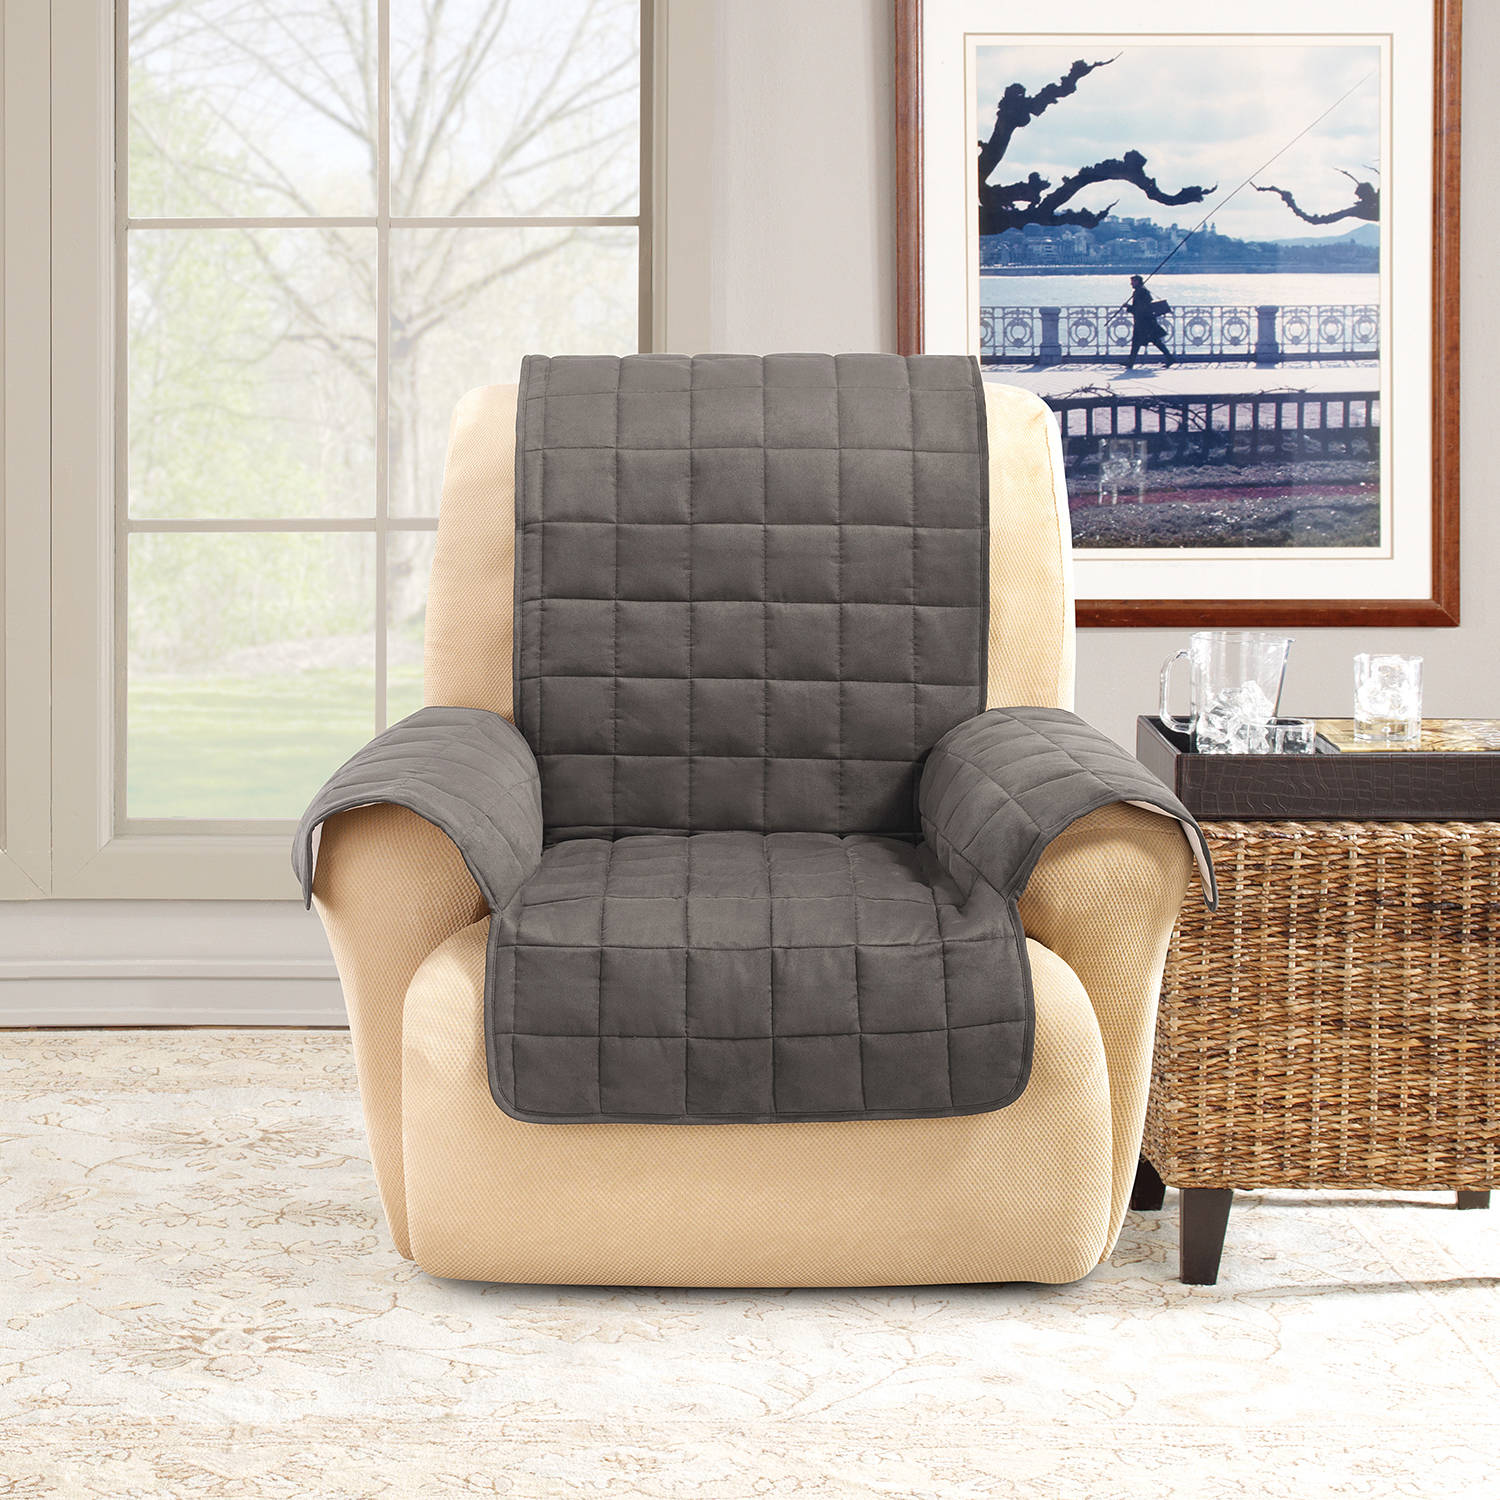 Sure Fit Ultimate Waterproof Quilted Pet Recliner Cover   Walmart.com